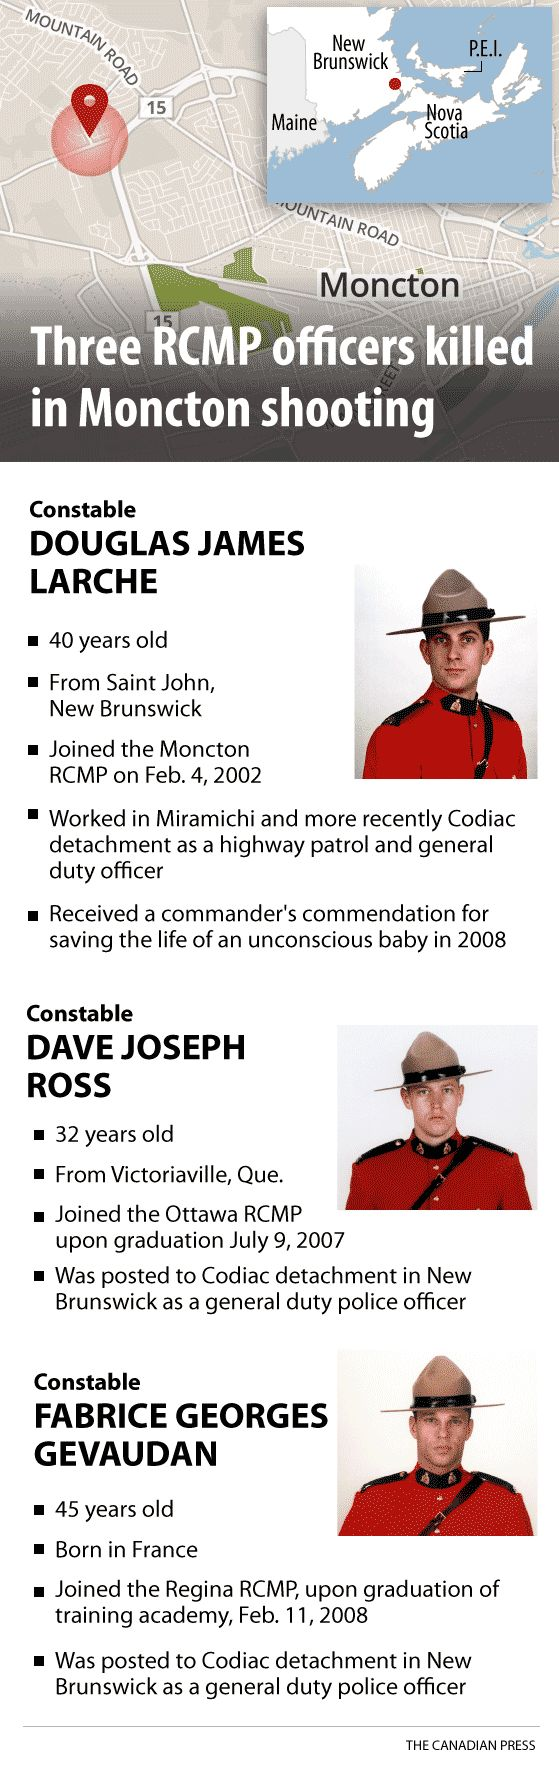 Moncton shooting victims June 4, 2014